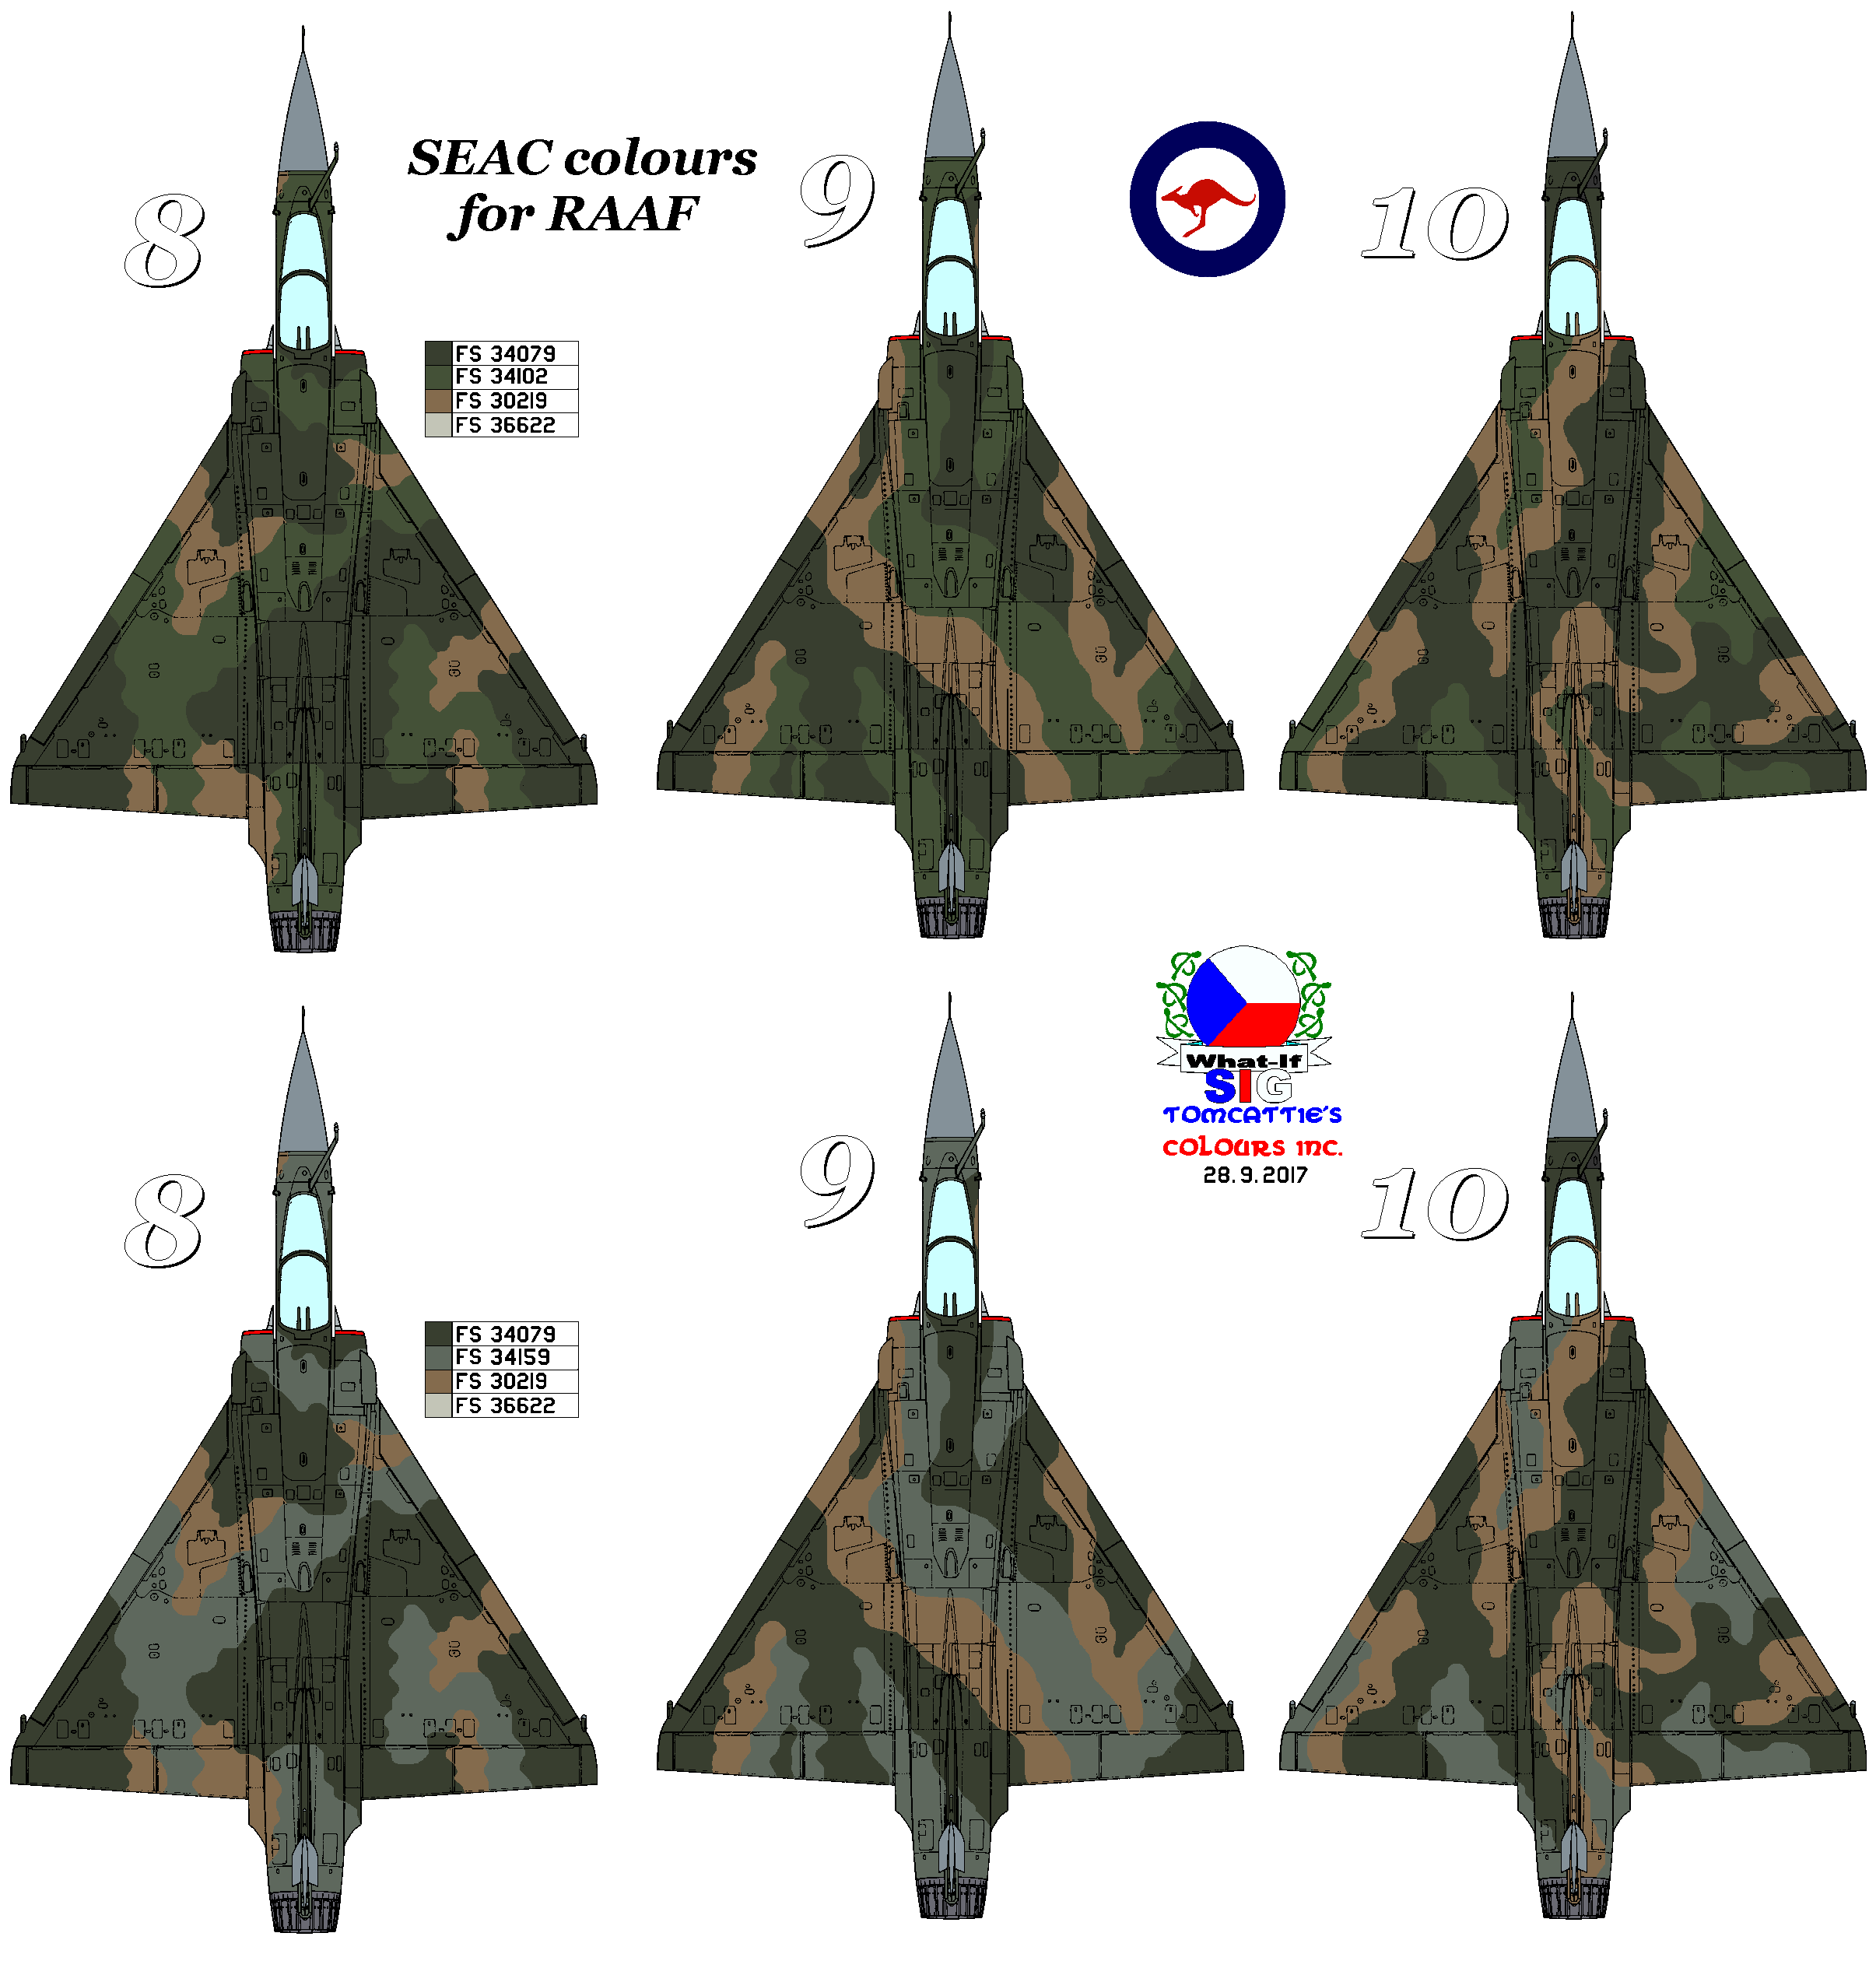 Mirage 2000 - tops4.png